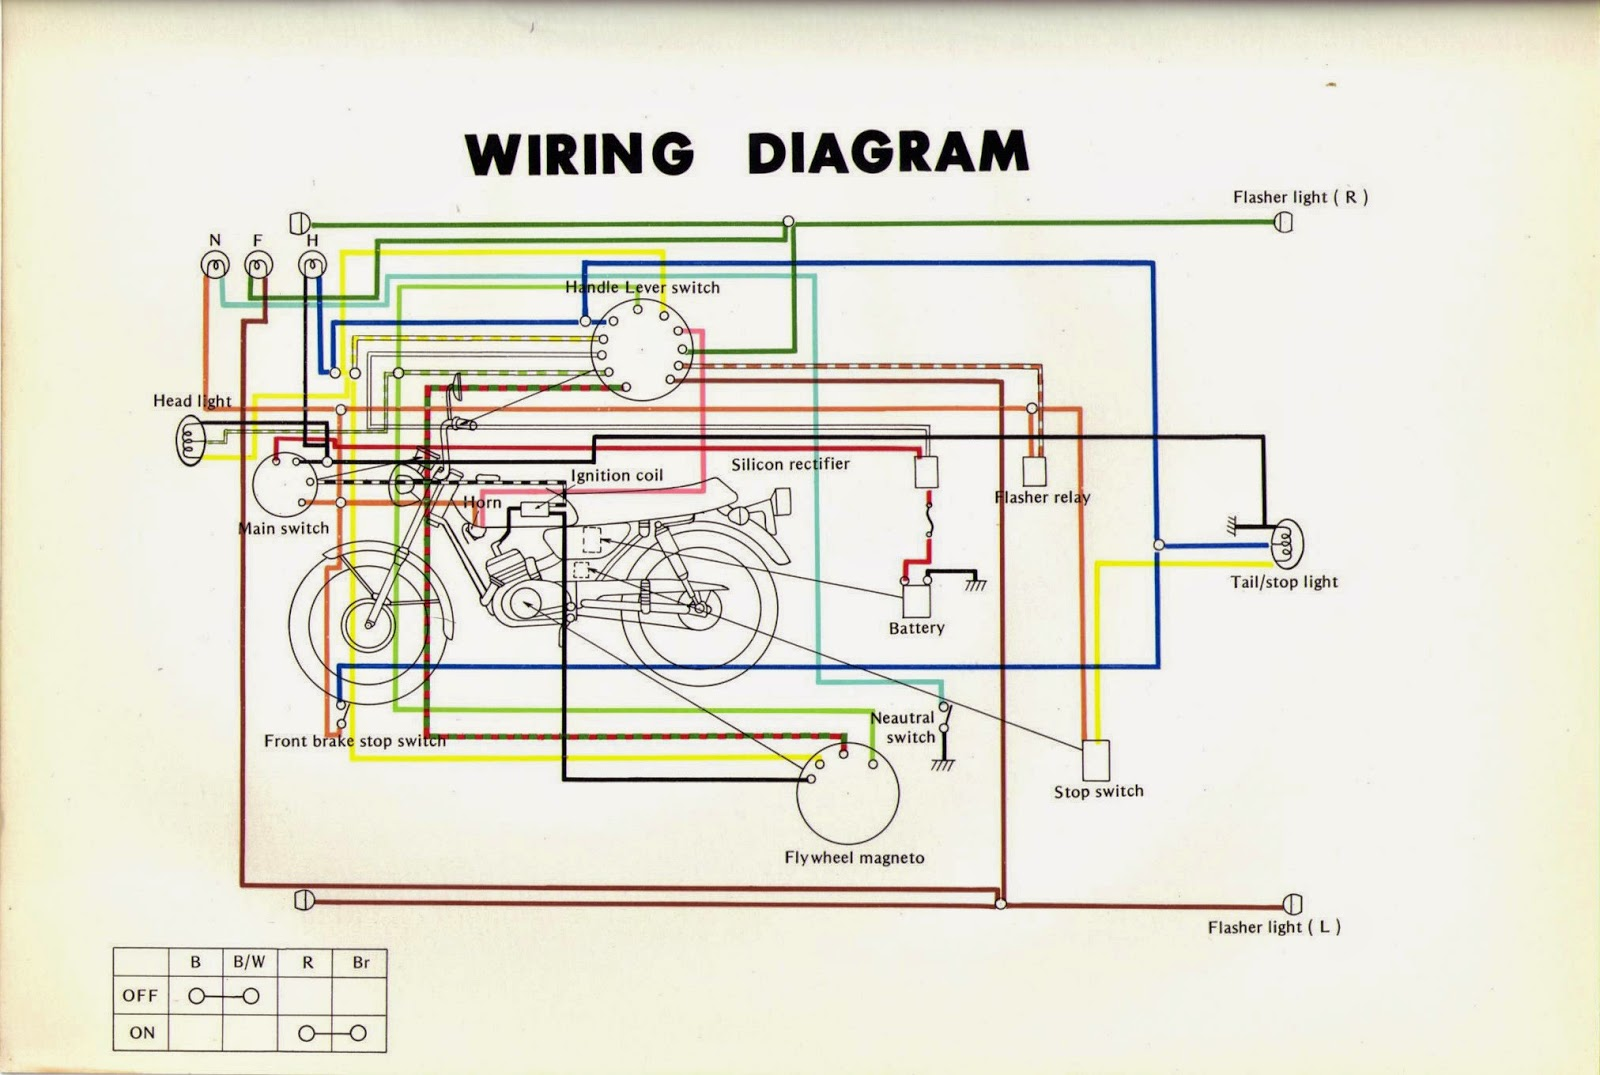 Yamaha Ls2 Wiring Diagram Books Of Wiring Diagram \u2022 Auto Wiring  Diagrams Yamaha Ls2 Wiring Diagram